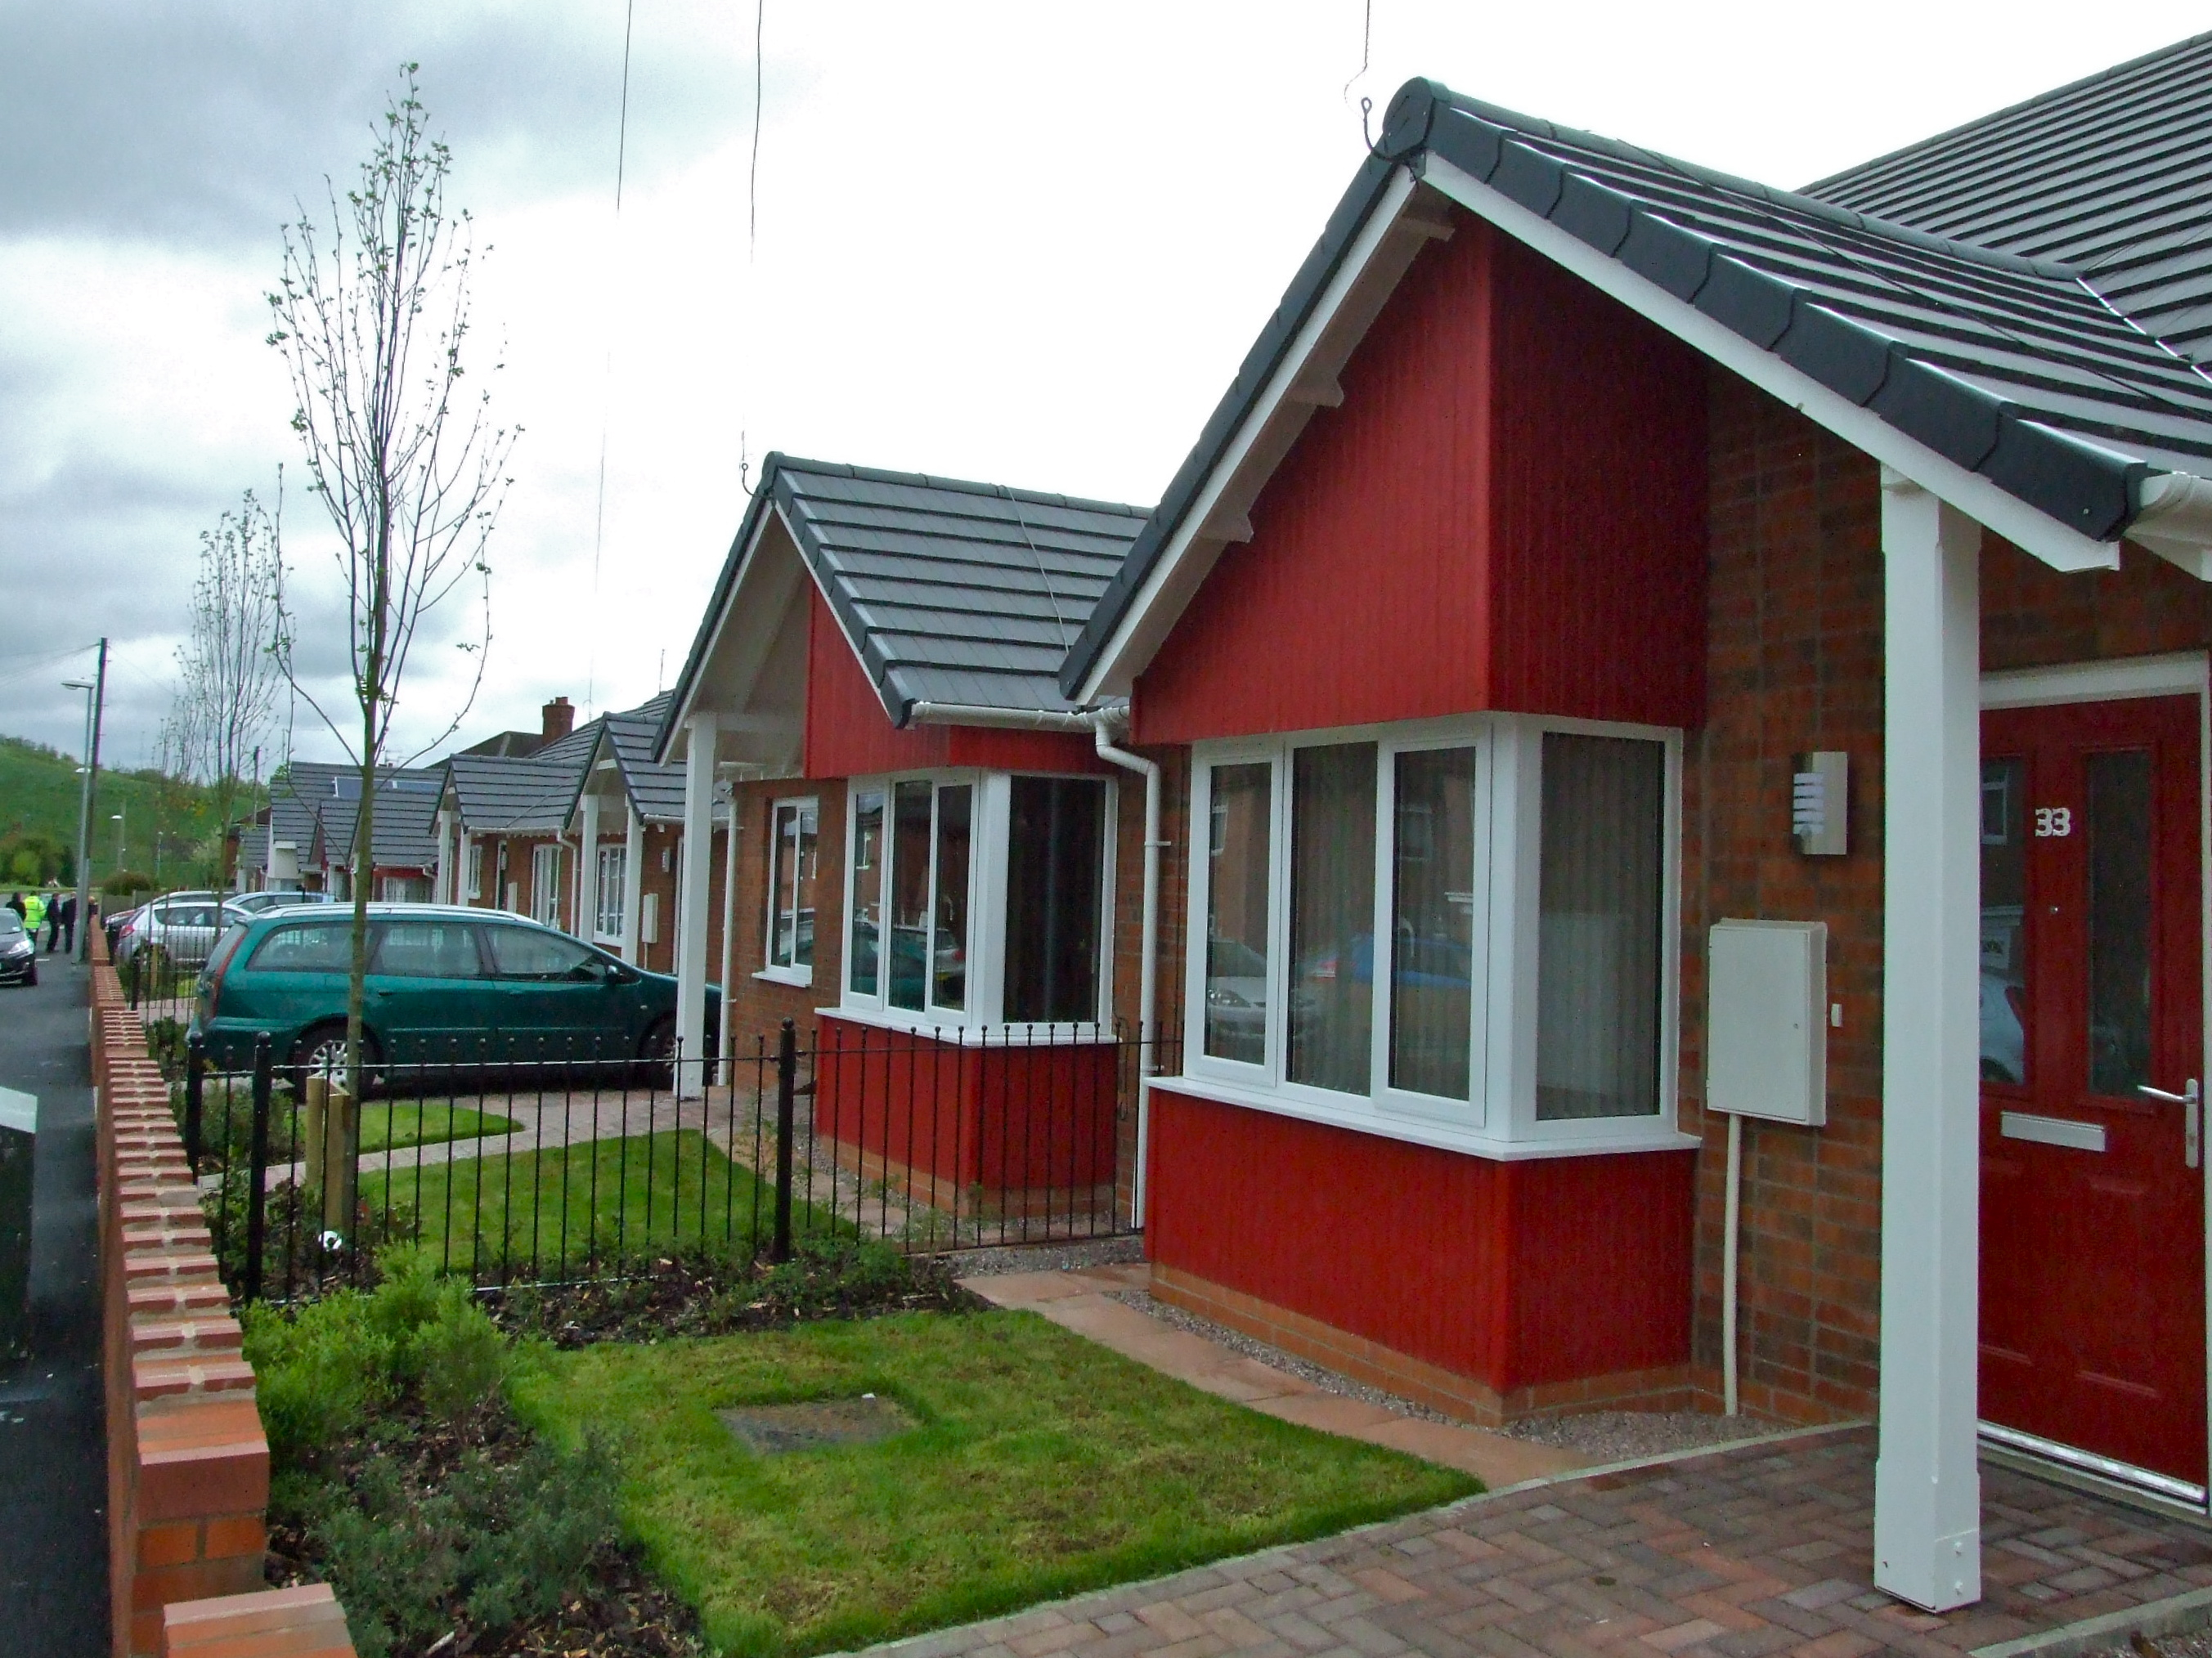 New Homes at Warren Road, Stoke-on-Trent